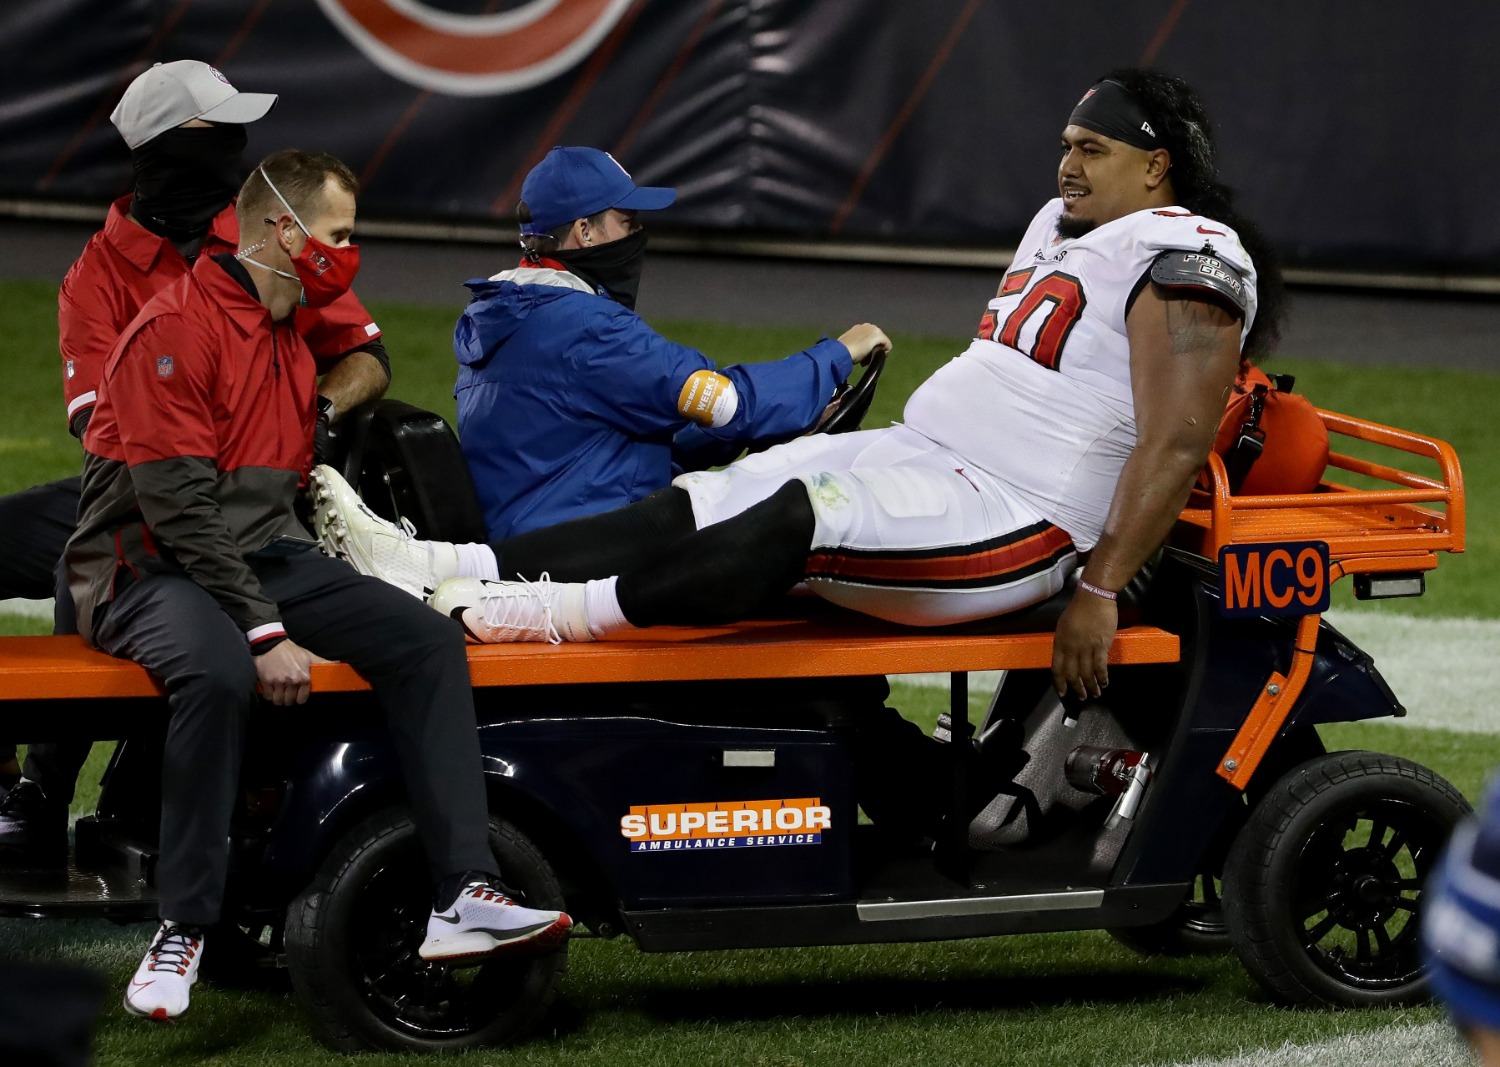 The Tampa Bay Buccaneers suffered a brutal injury blow on Thursday. Breakout star Vita Vea fractured his ankle and is done for the season.